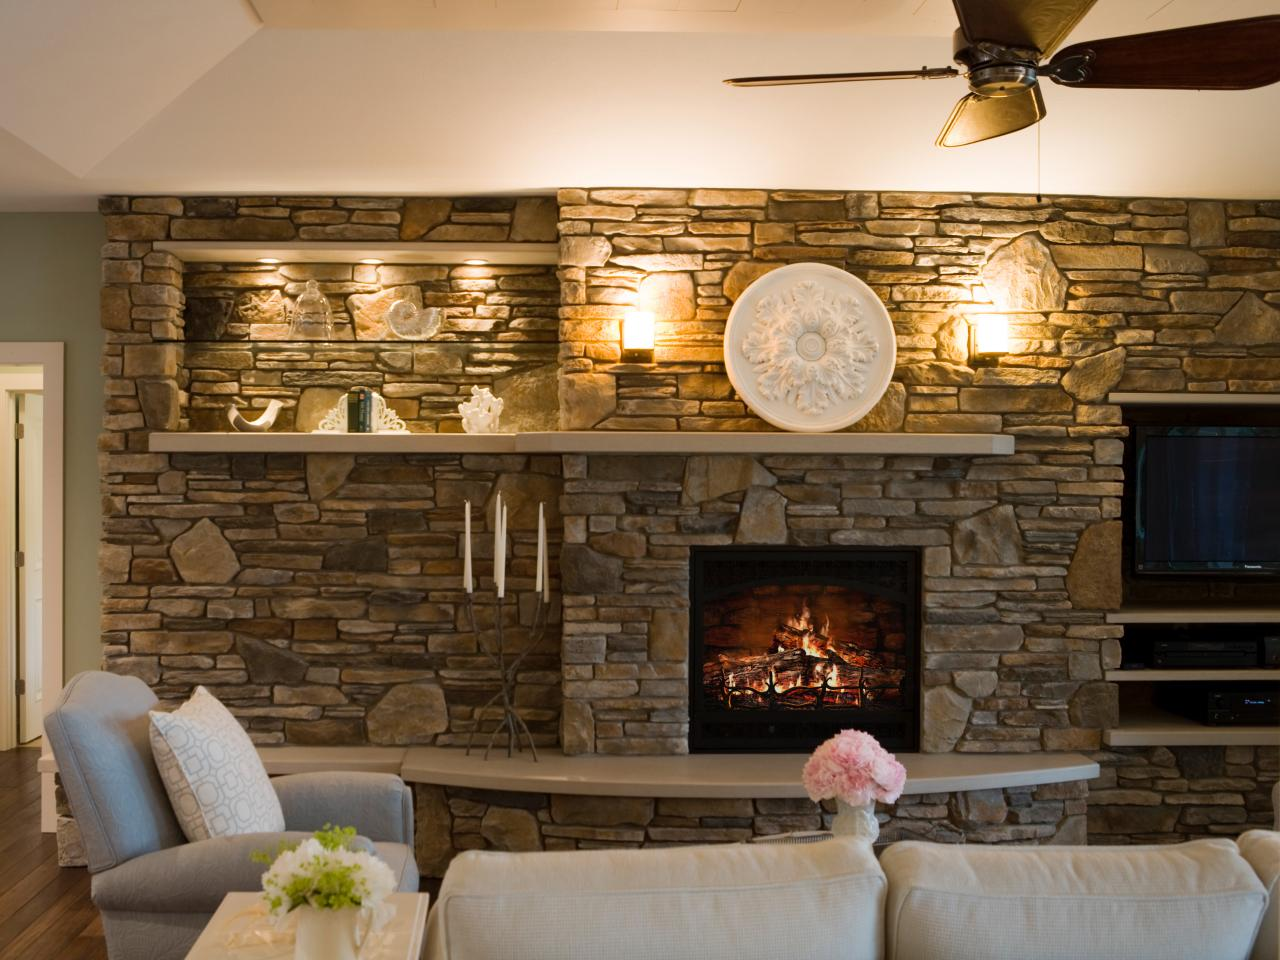 Cottage decorating ideas interior design styles and Family room design ideas with fireplace